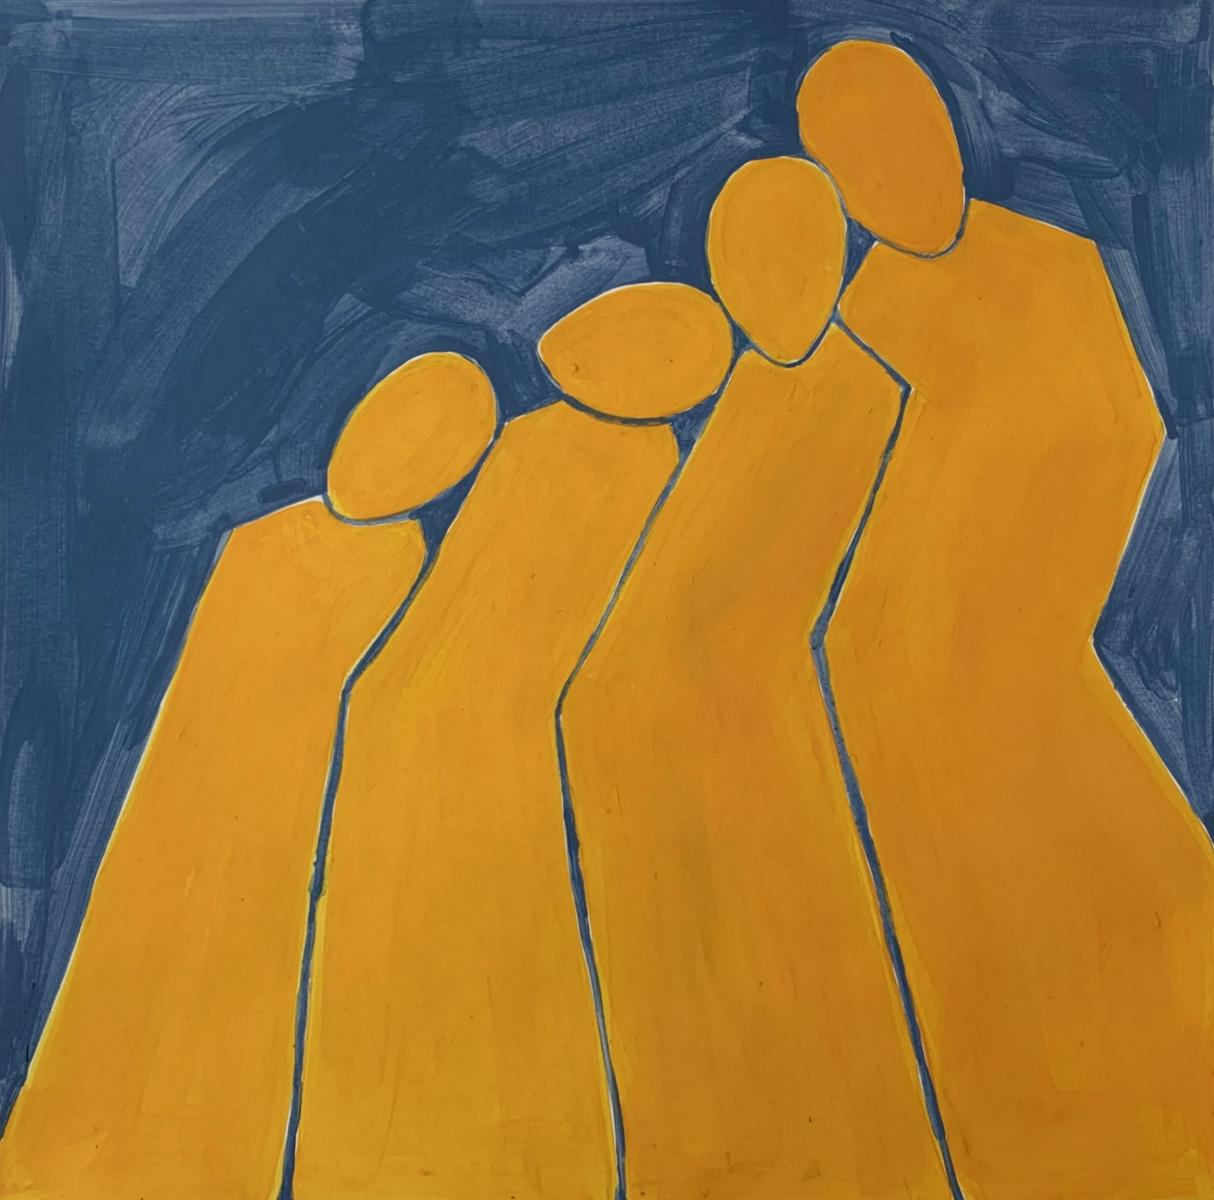 A family - Figurative Acrylic Painting on Paper, Young art, Minimalism